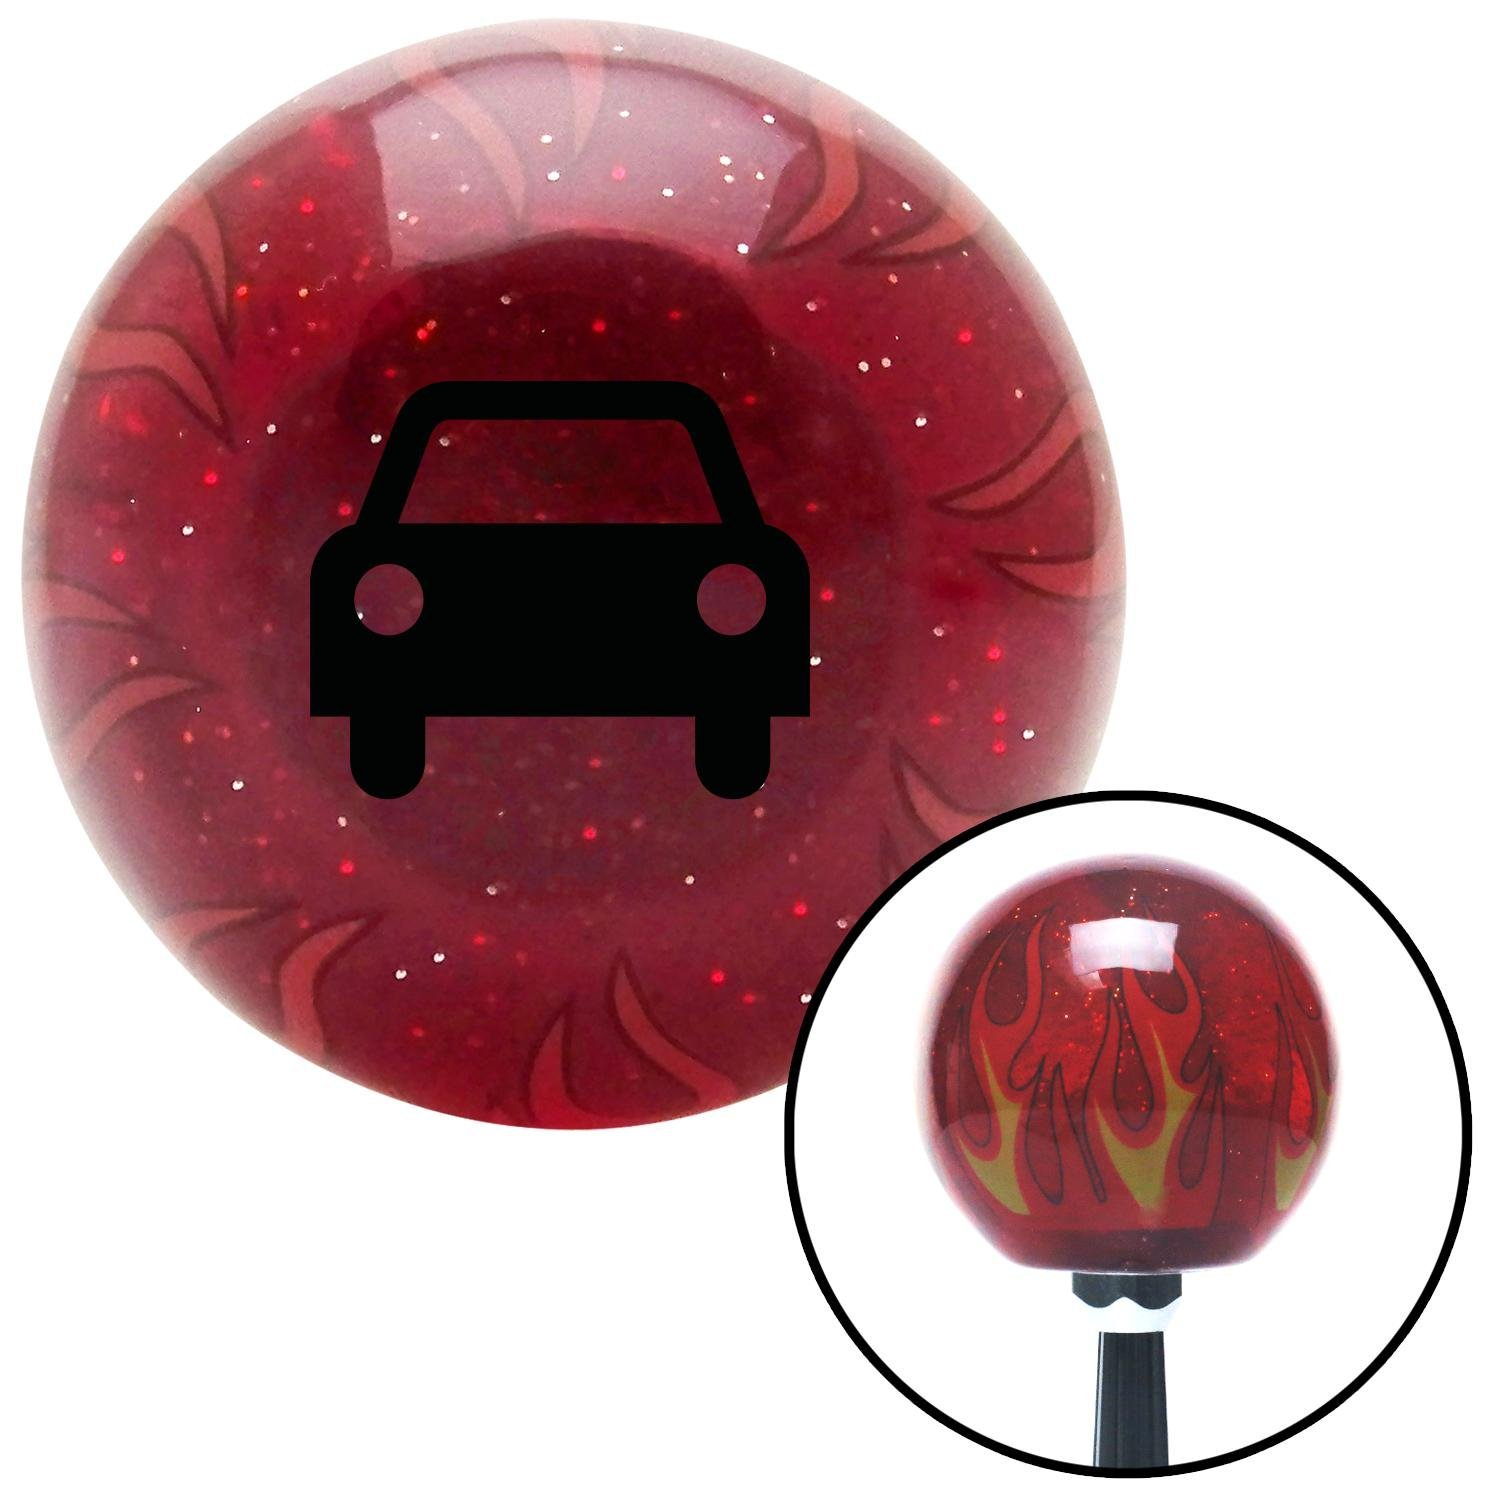 American Shifter 240195 Red Flame Metal Flake Shift Knob with M16 x 1.5 Insert Black Car